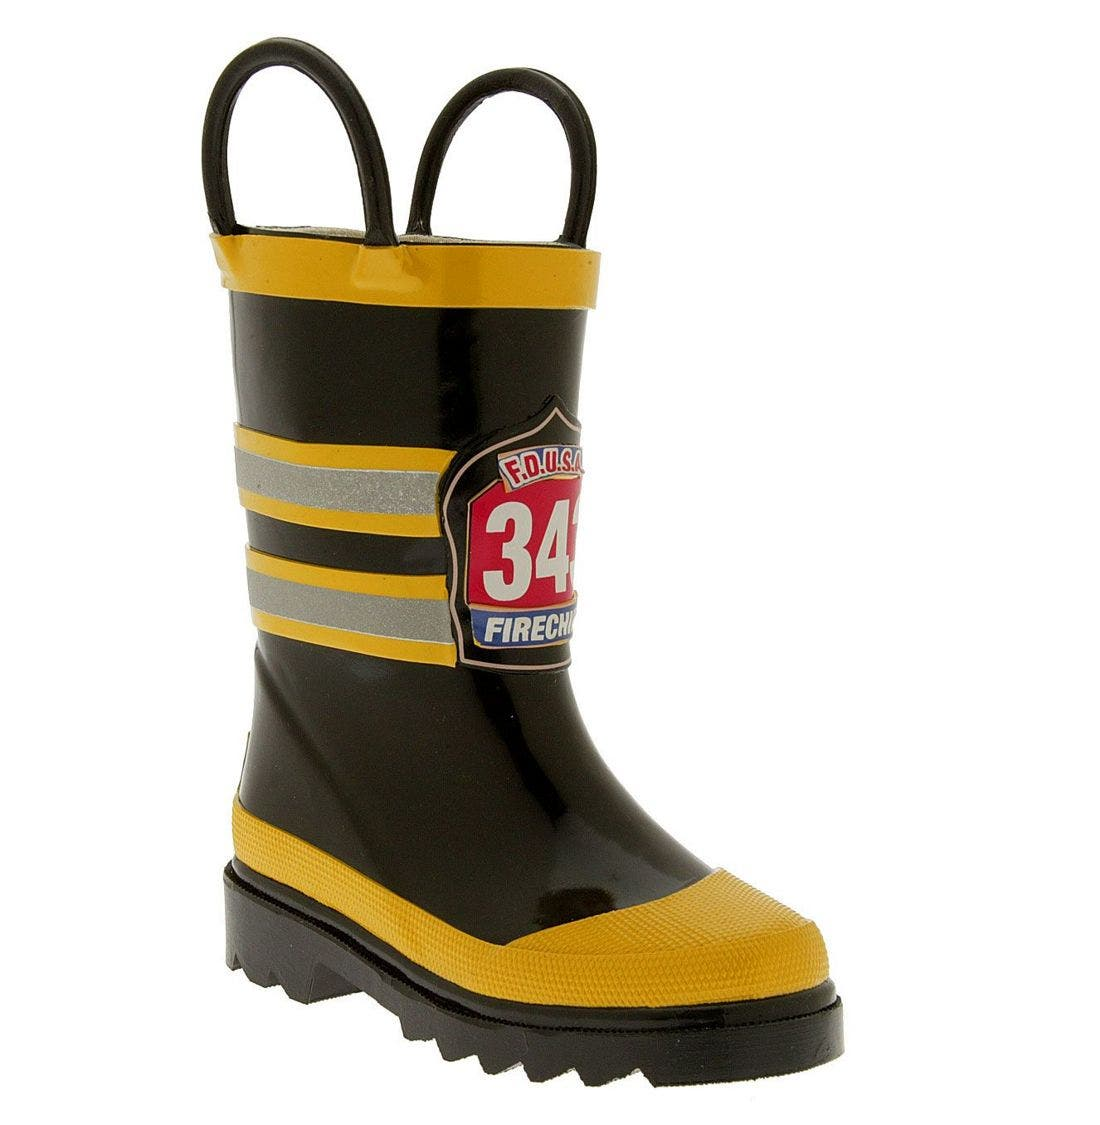 Main Image - Western Chief 'Fireman' Rain Boot (Walker, Toddler, Little Kid & Big Kid)